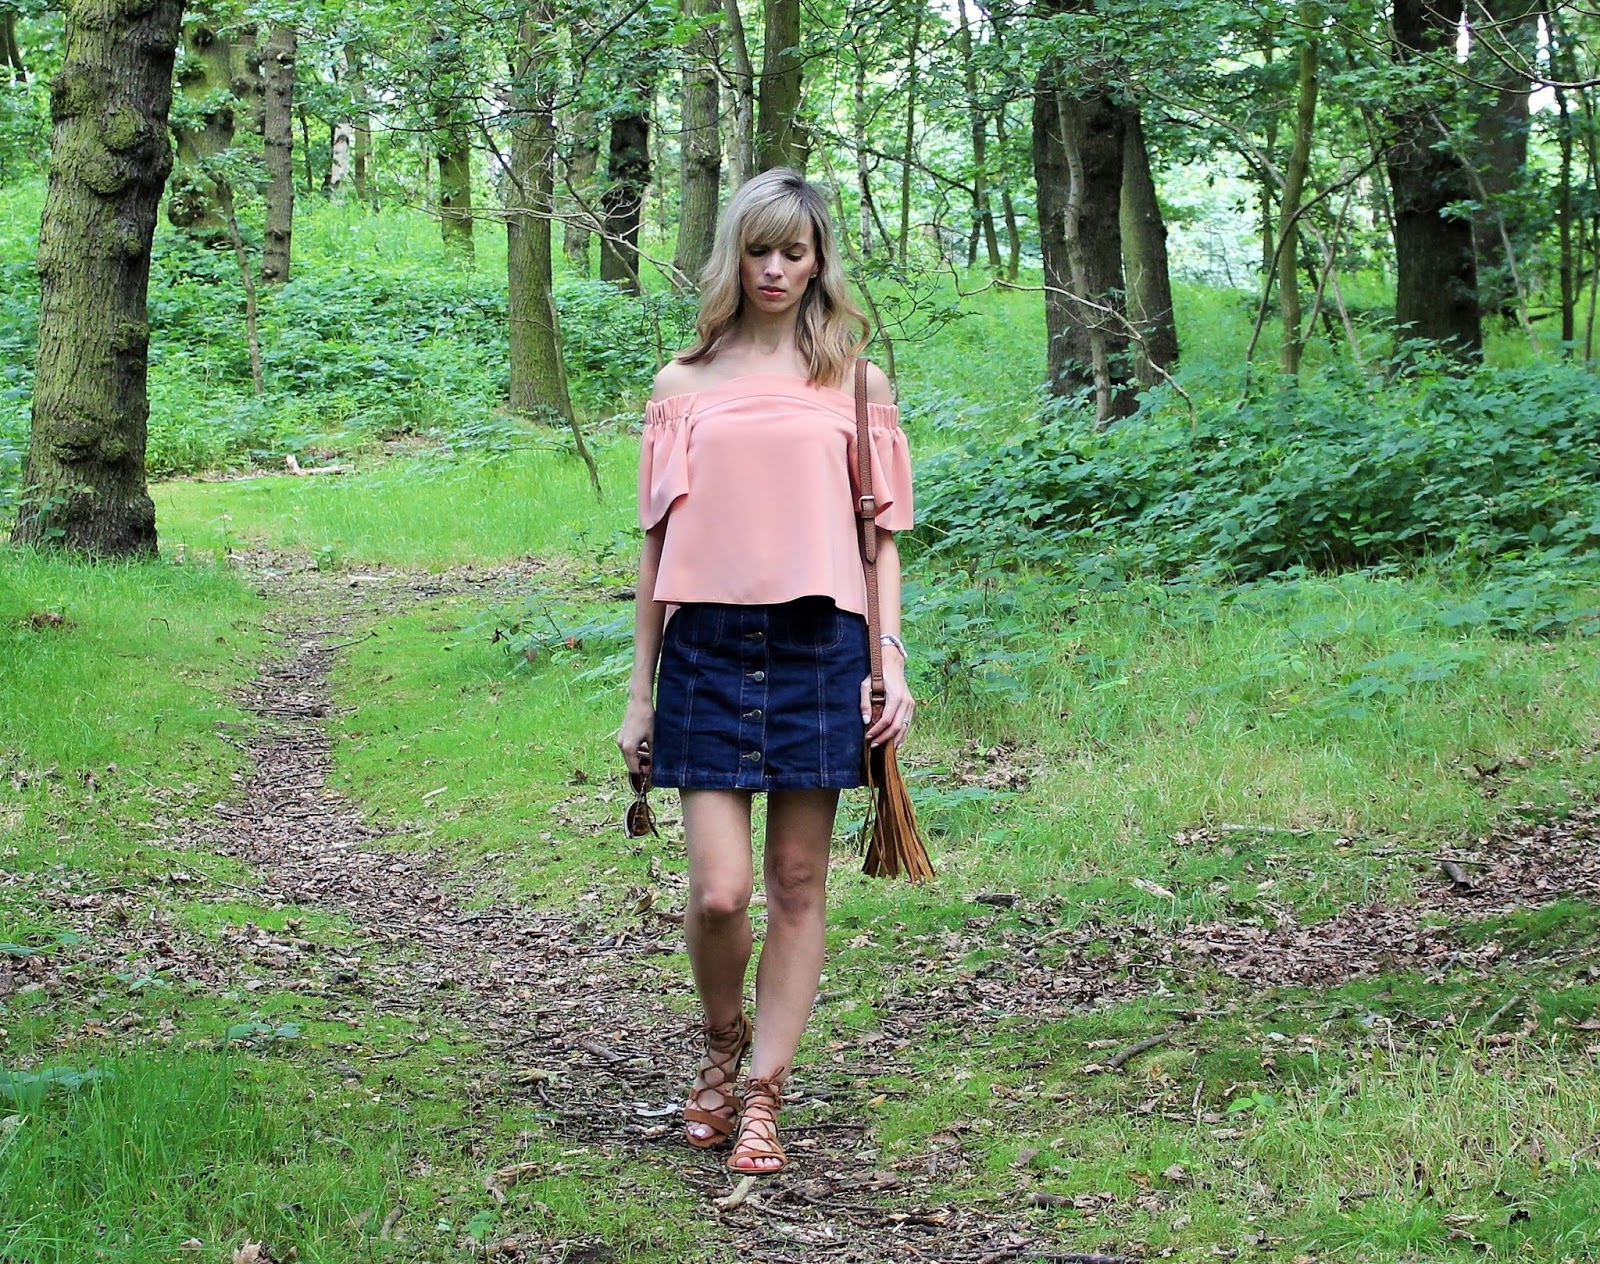 The Casual Bardot 1 - OOTD featuring Topshop off the shoulder top